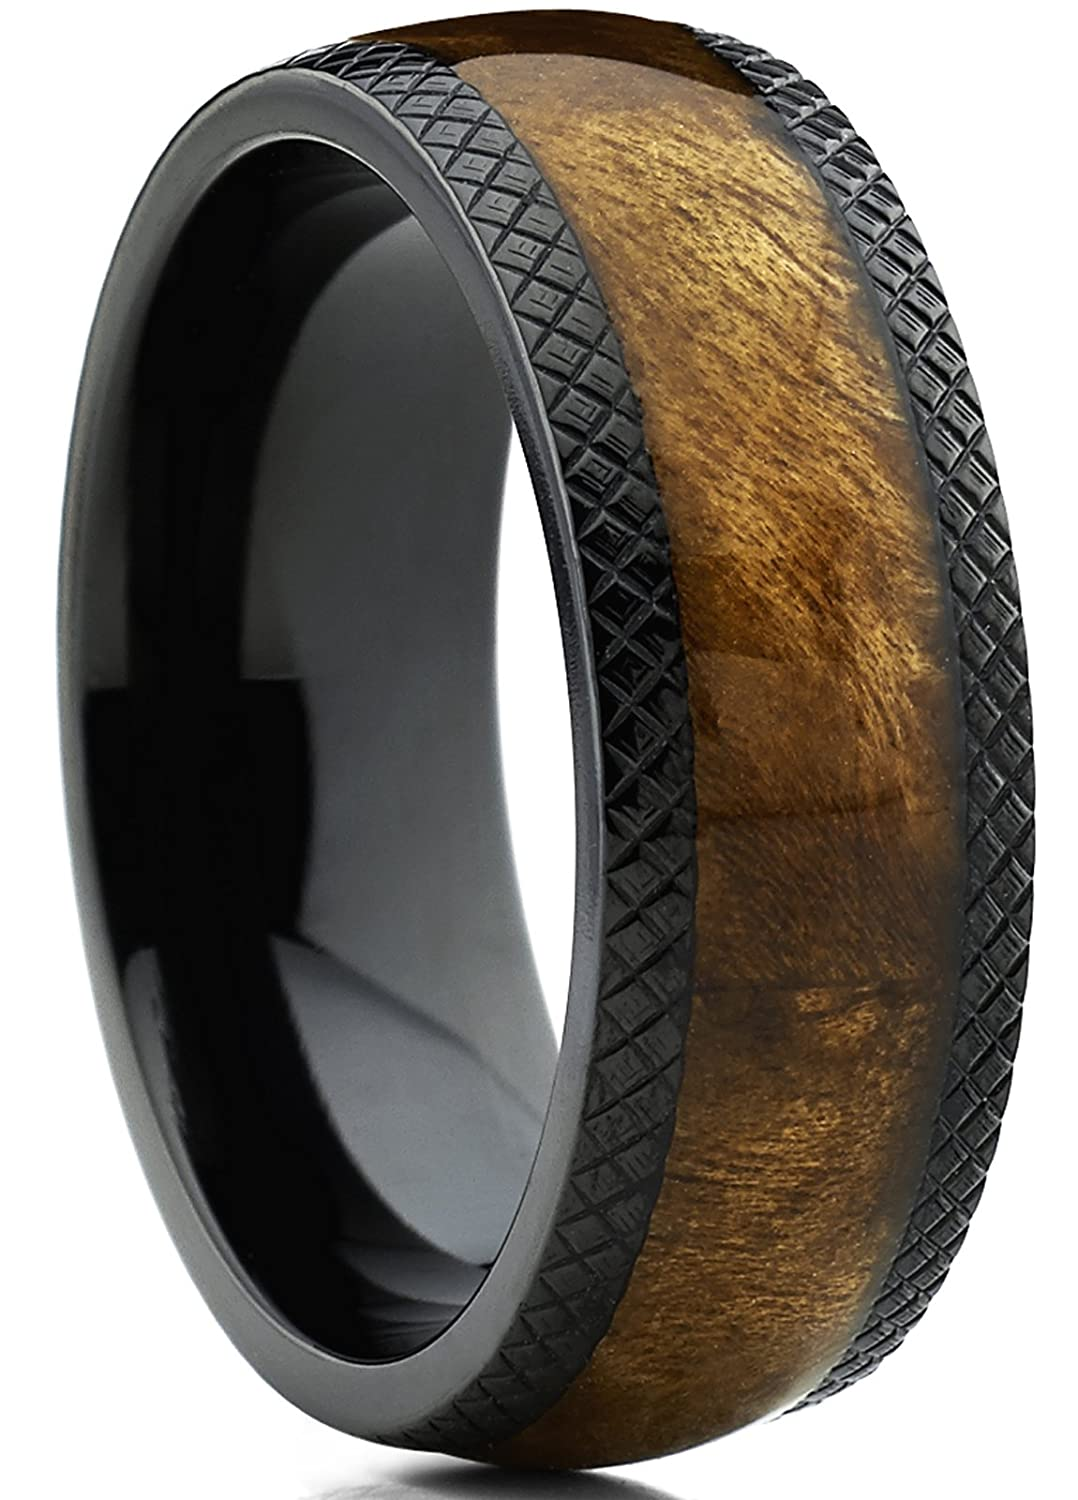 Amazon.com: Dome Black Titanium Wedding Band Ring With Real Marble Brown  Wood Inlay